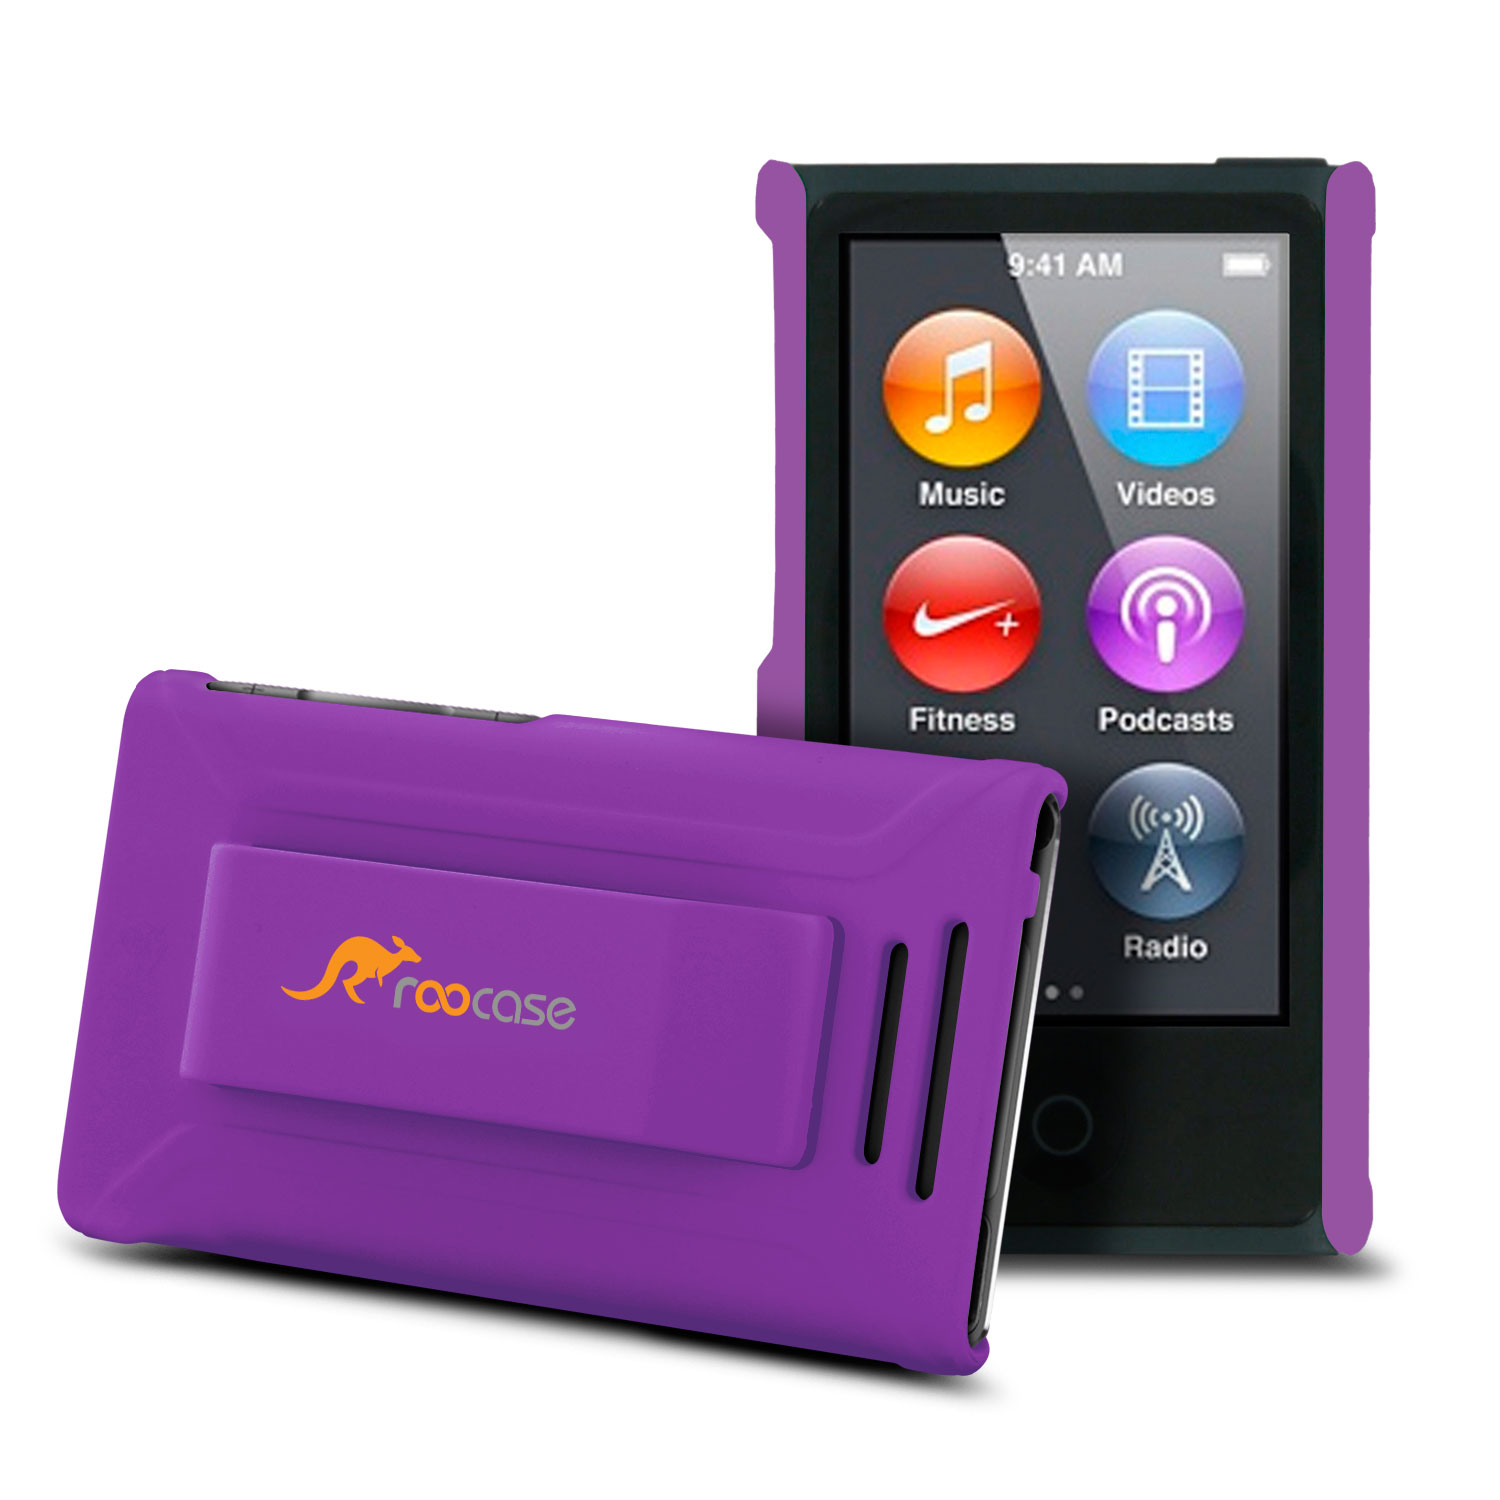 iPod Nano 7 Case - roocase Ultra Slim Fit (Purple) Shell Case Cover for Apple iPod Nano 7 (7th Generation)